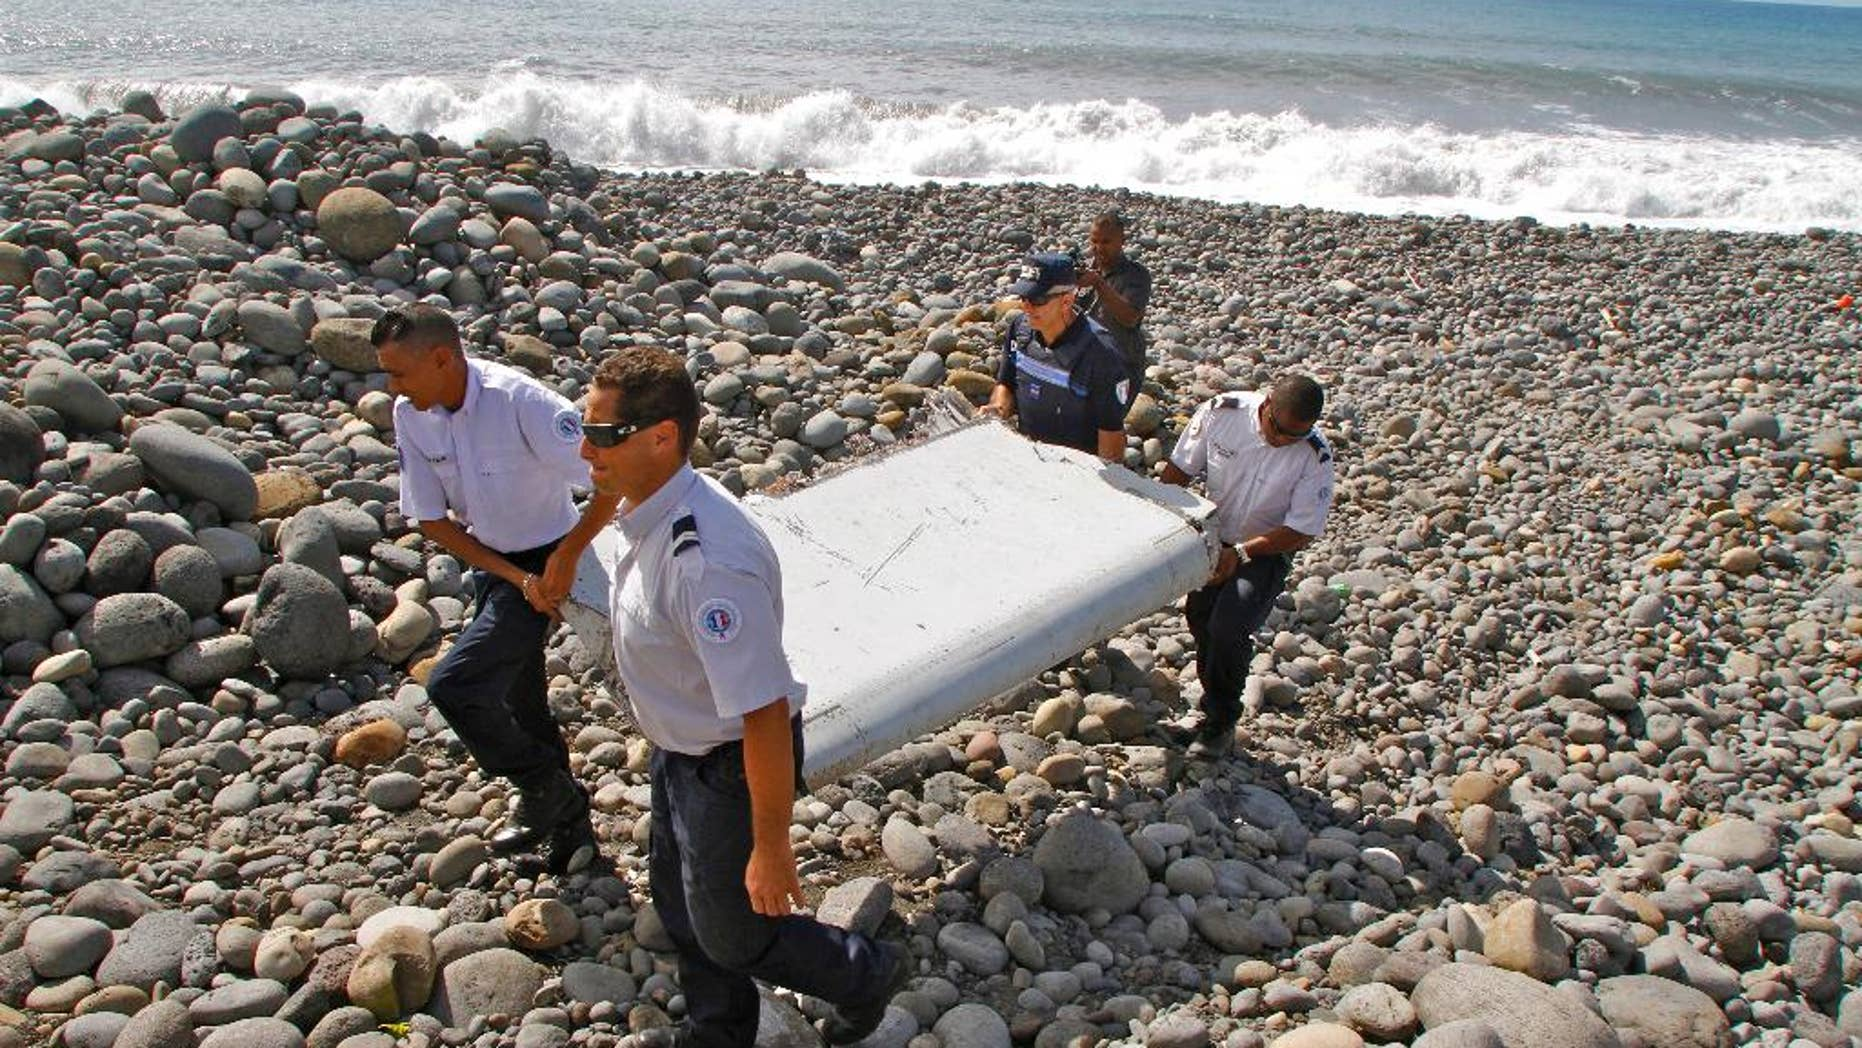 FILE - In this July 29, 2015, file photo, French police officers carry a piece of debris from a plane known as a flaperon in Saint-Andre, Reunion Island. The barnacle-encrusted part was the first trace of Malaysia Airlines Flight 370 that disappeared two years ago. Malaysia's confirmation on Thursday, May 12, 2016, that other debris found in March 2016 came from missing Malaysia Airlines Flight 370 brings to five the number of parts that have been recovered from the aircraft that vanished two years ago. (AP Photo/Lucas Marie, File)